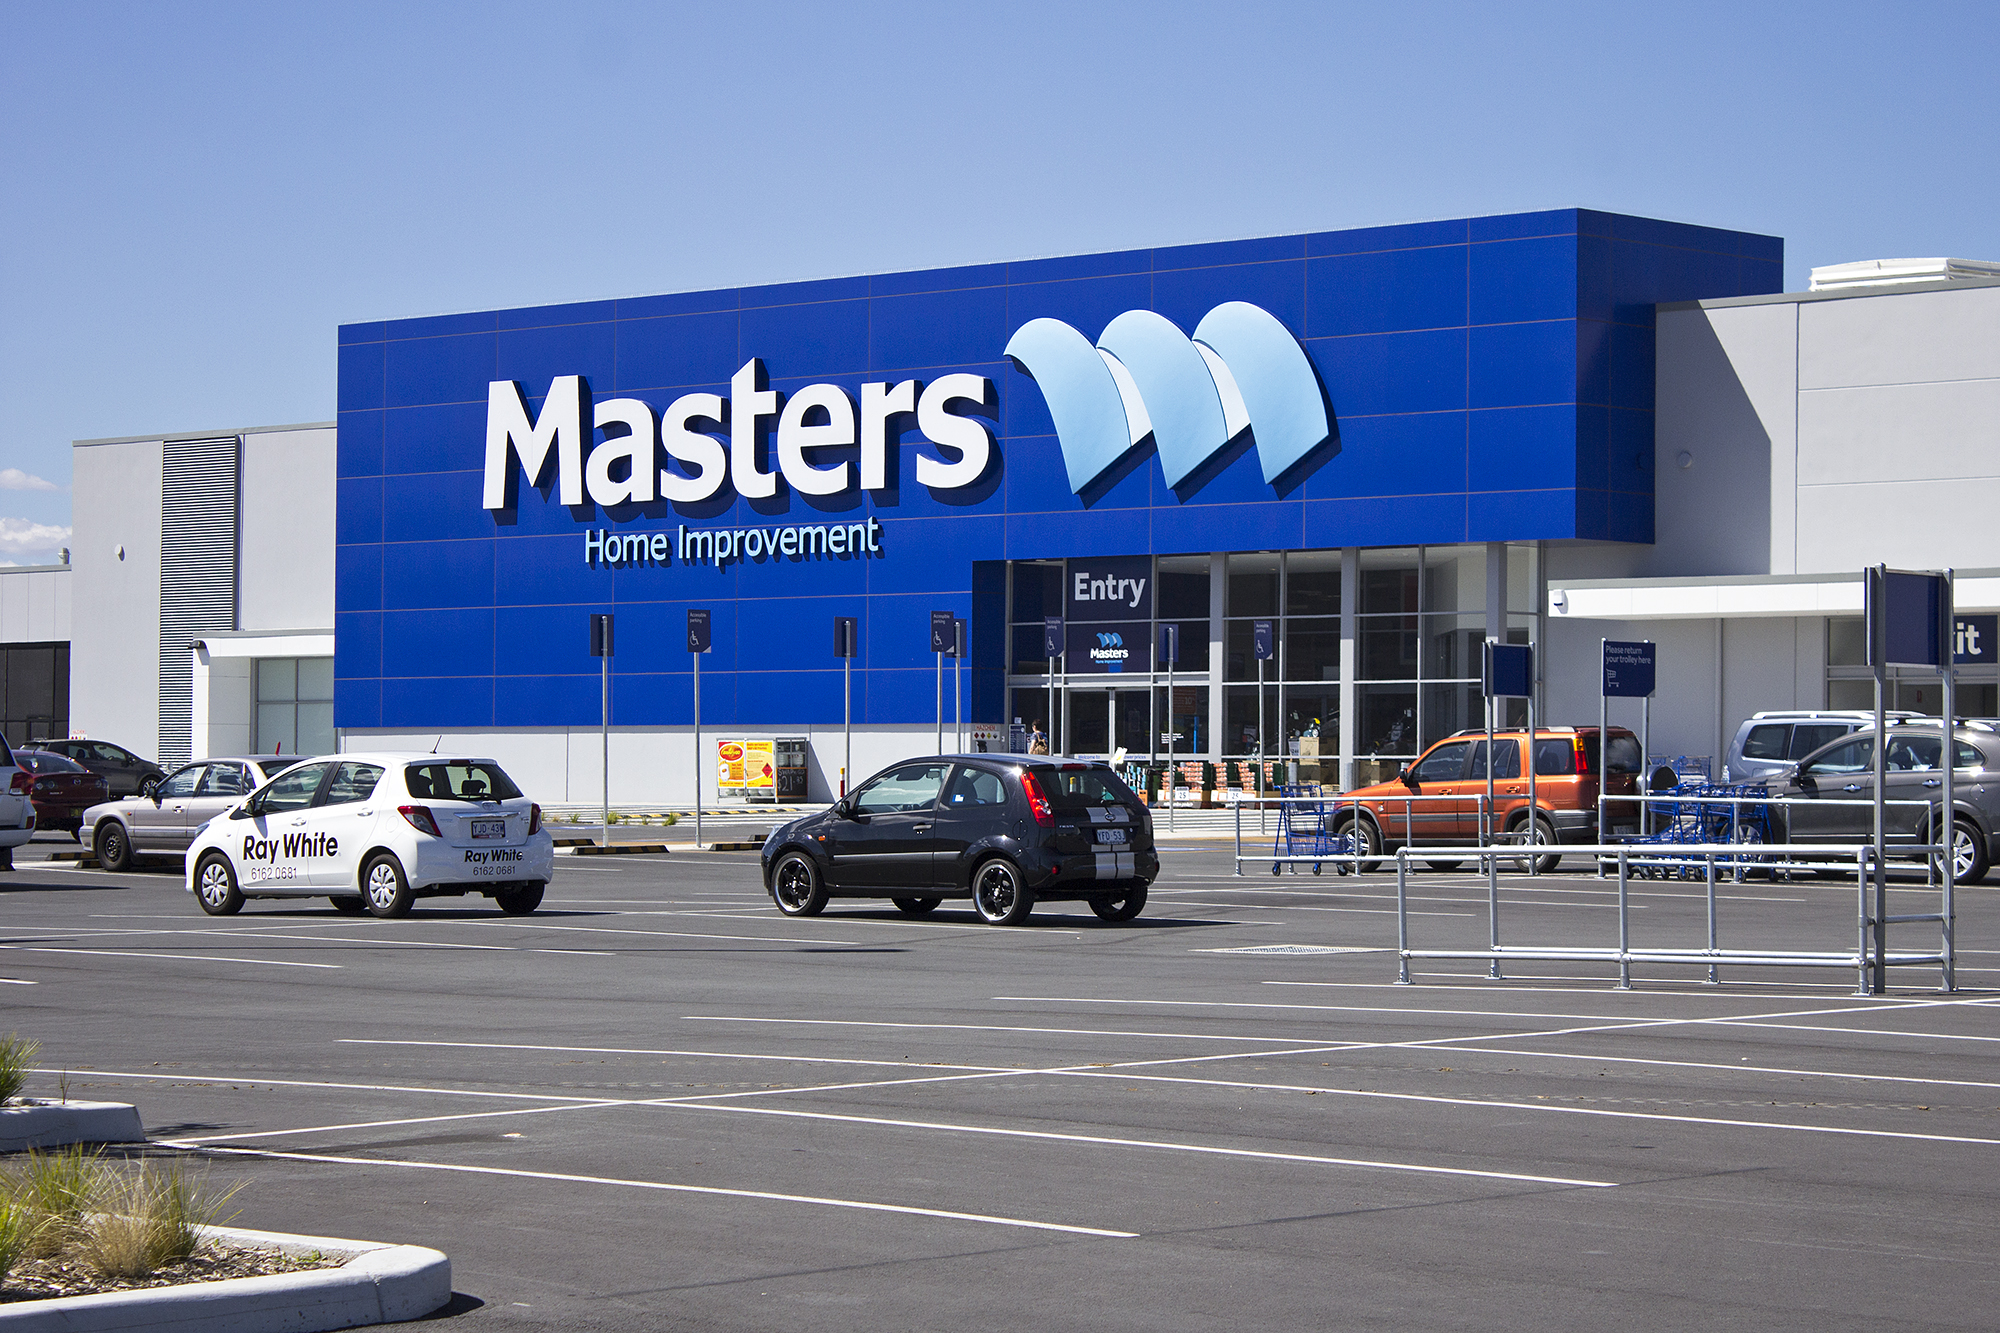 Masters dates in Sydney